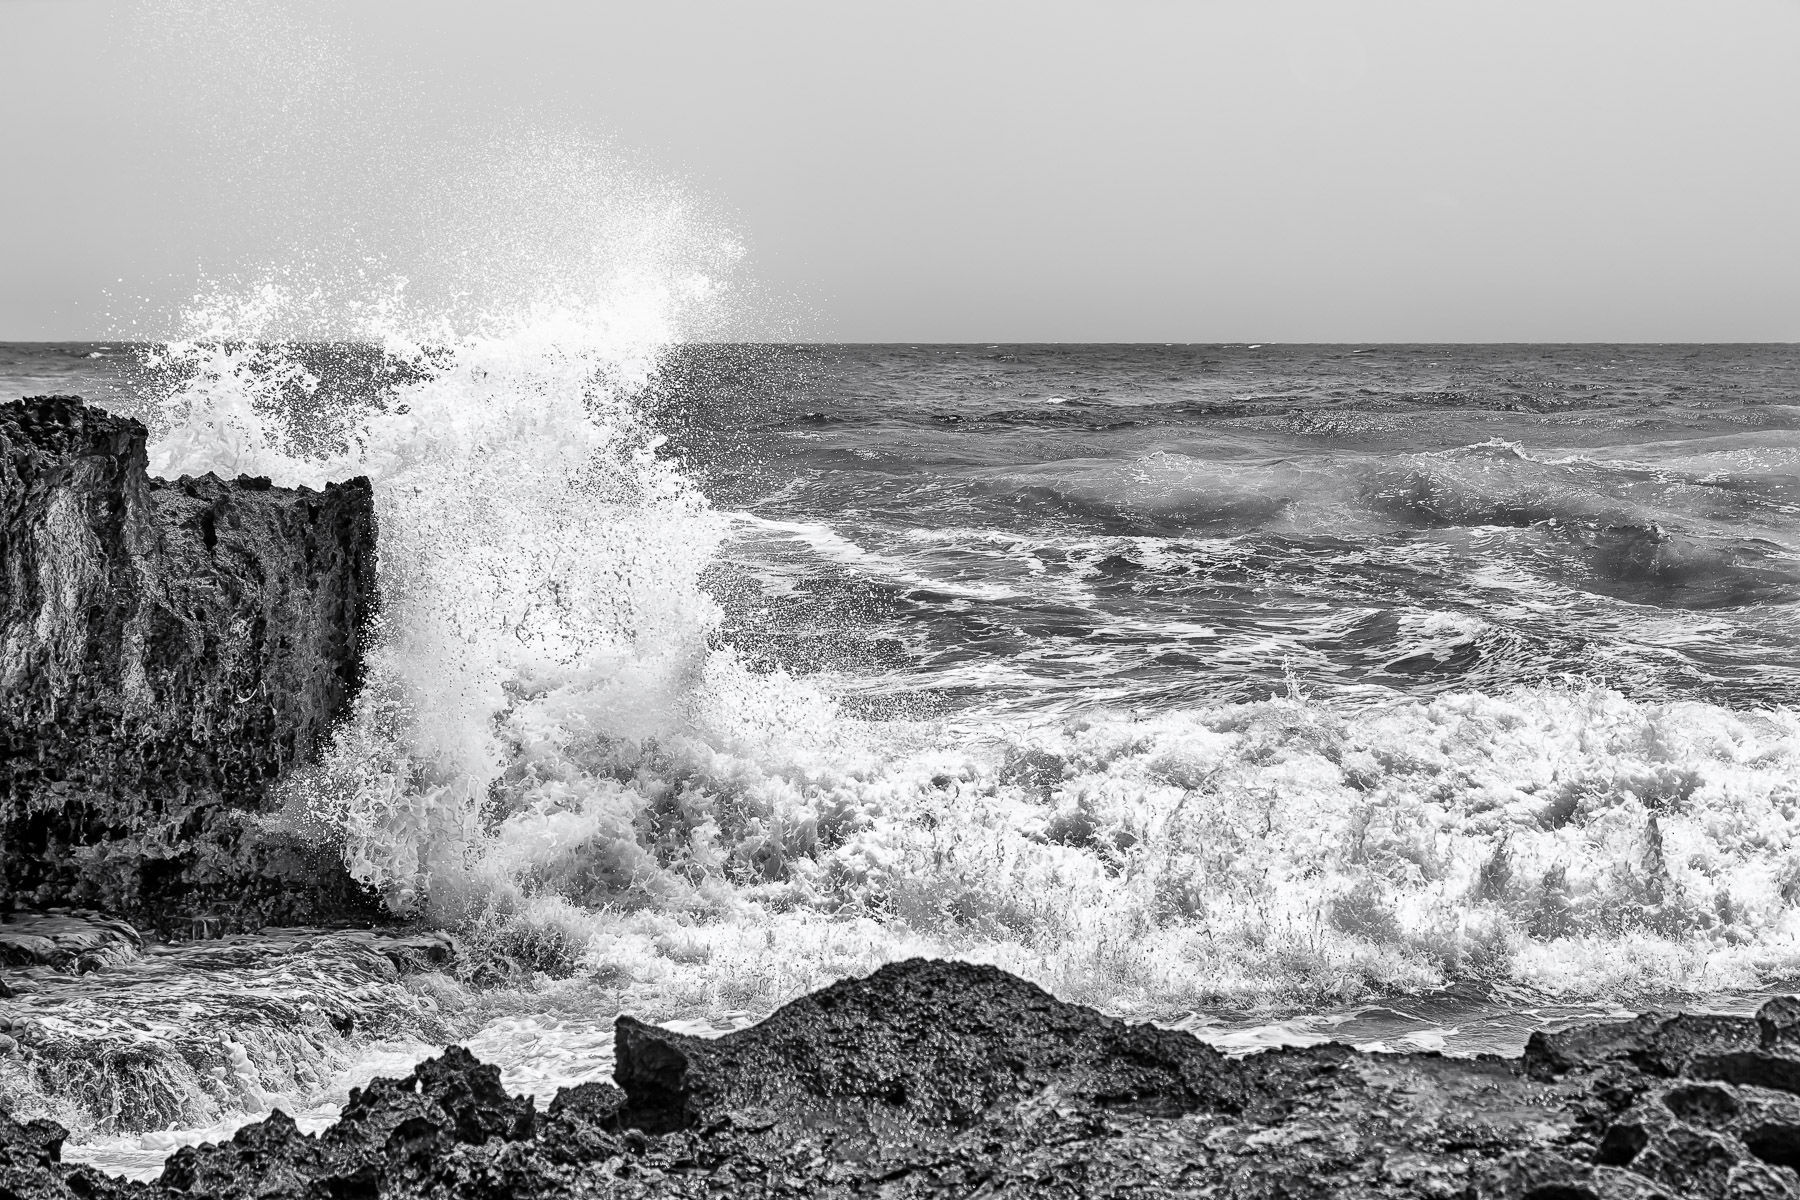 The roiling waves of the Atlantic Ocean splash onto the rocky shoreline of southeast Cozumel, Mexico.